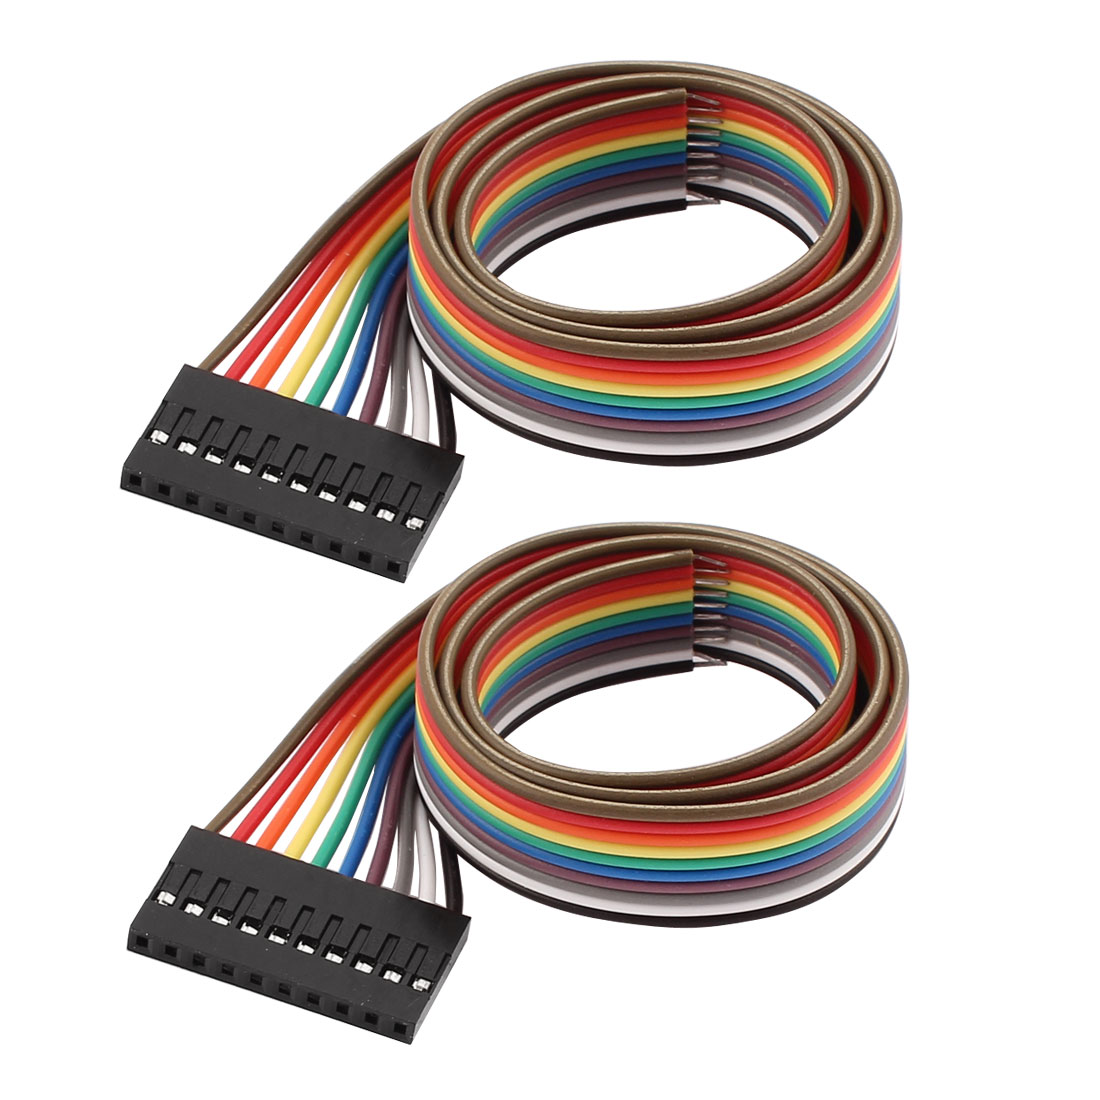 2PCS 2.54mm Pitch 10P Female Breadboard Single Head Jumper Wire Cable 40cm Long